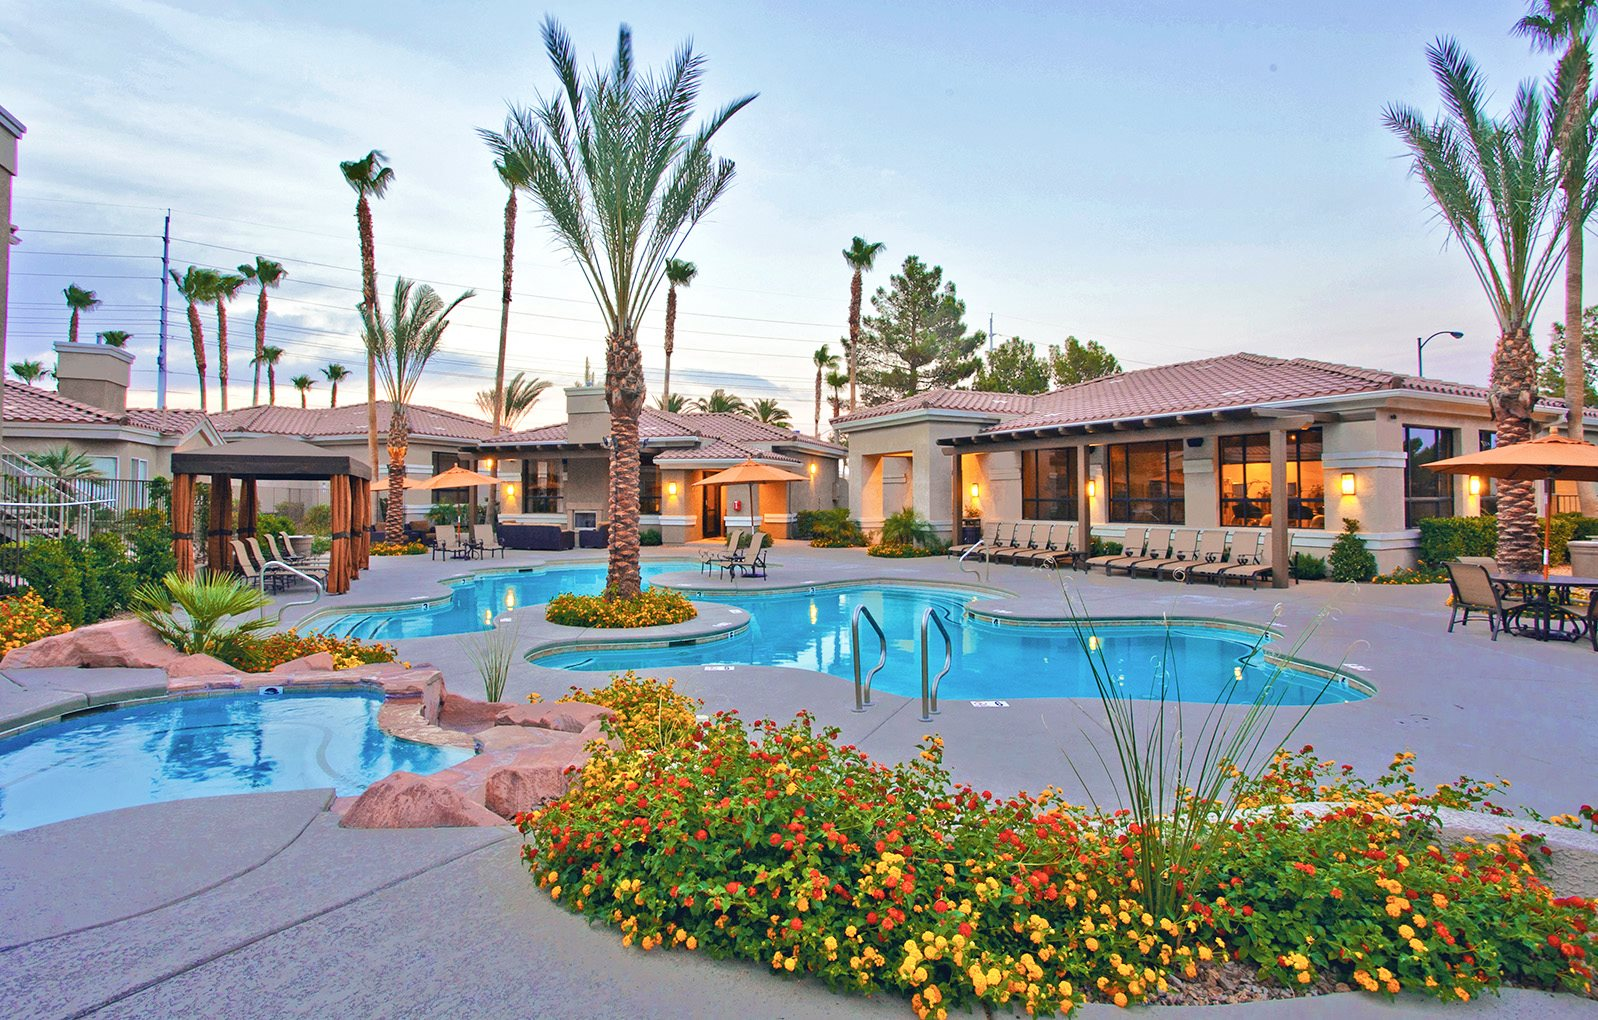 Pool Area with Lounge Seating at West Las Vegas Apartment Rentals